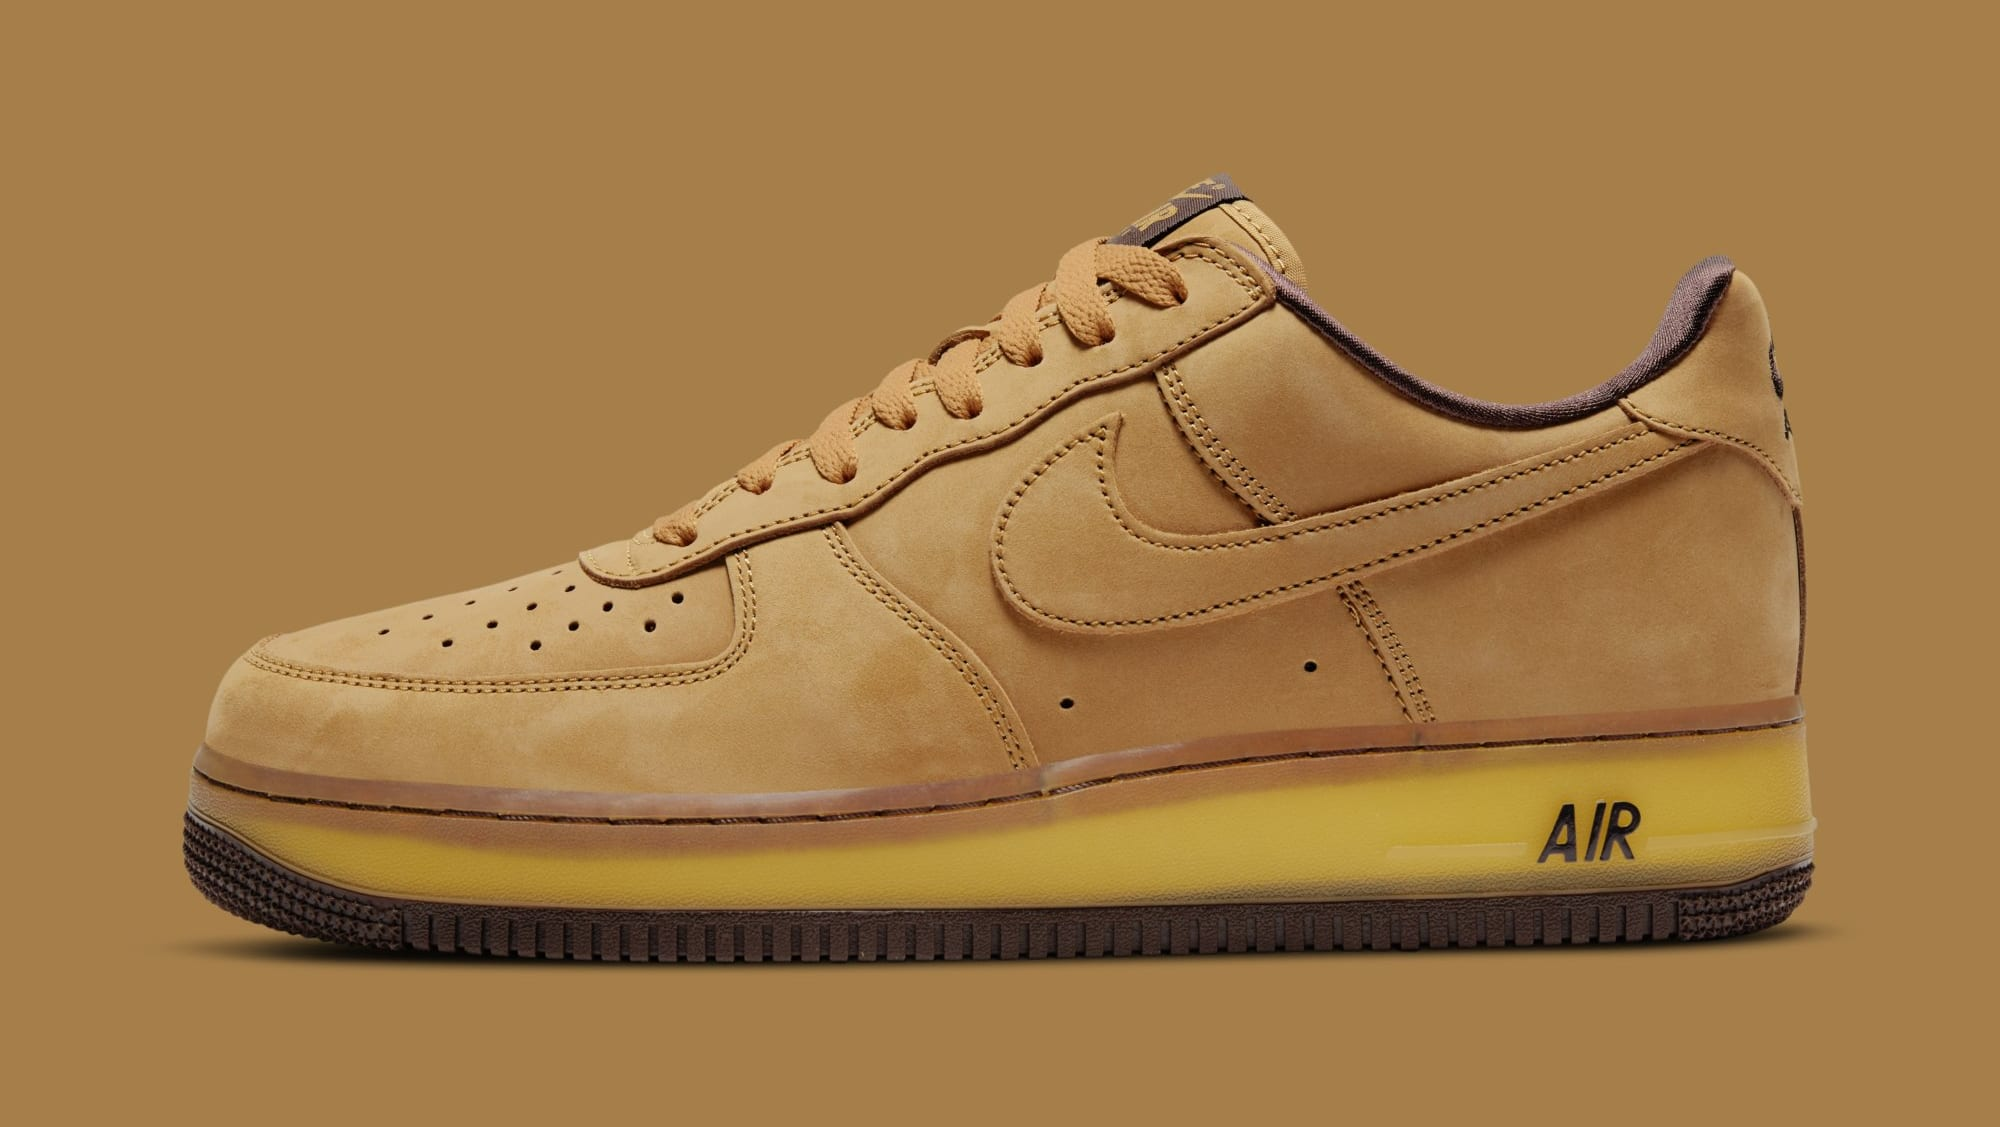 Nike Air Force 1 Low CO.JP 'Wheat Mocha' DC7504-700 Lateral